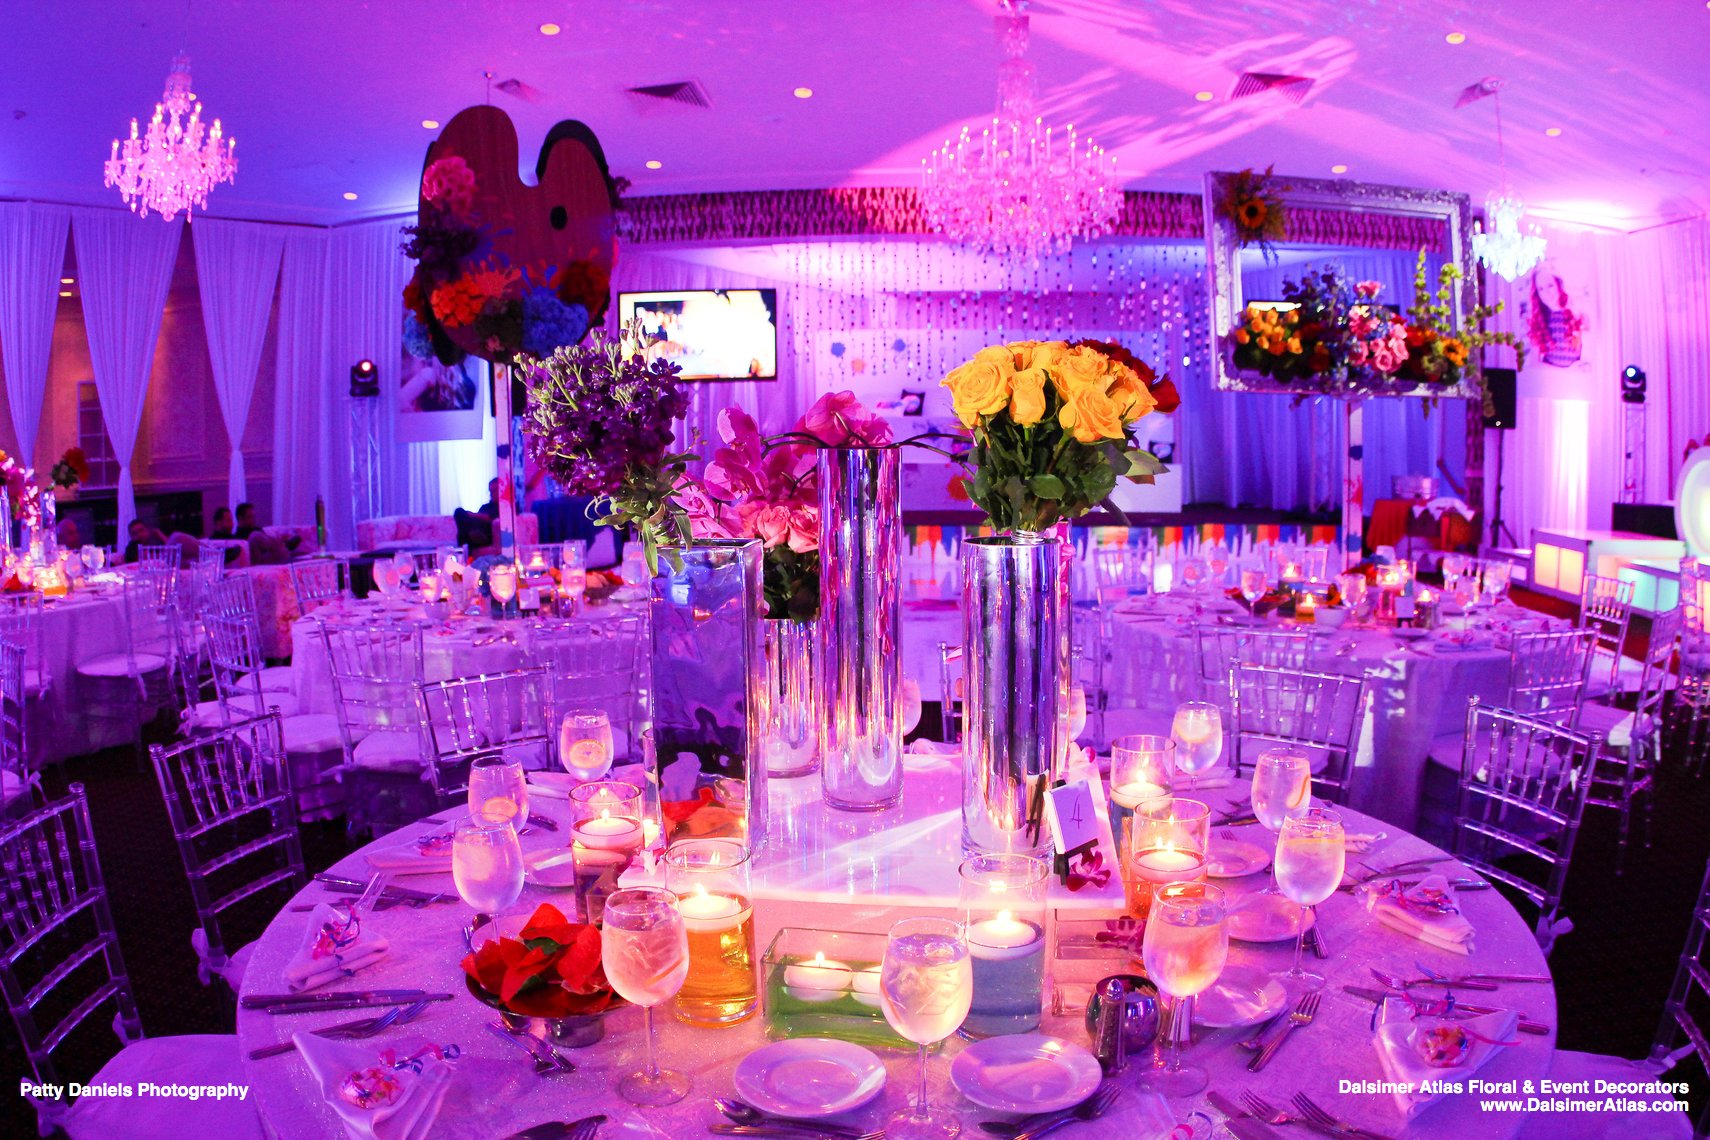 mitzvah-theme-decorations-bat-mitzvah-temple-kol-ami-emanu-el-plantation-florida-dalsimer-atlas-10